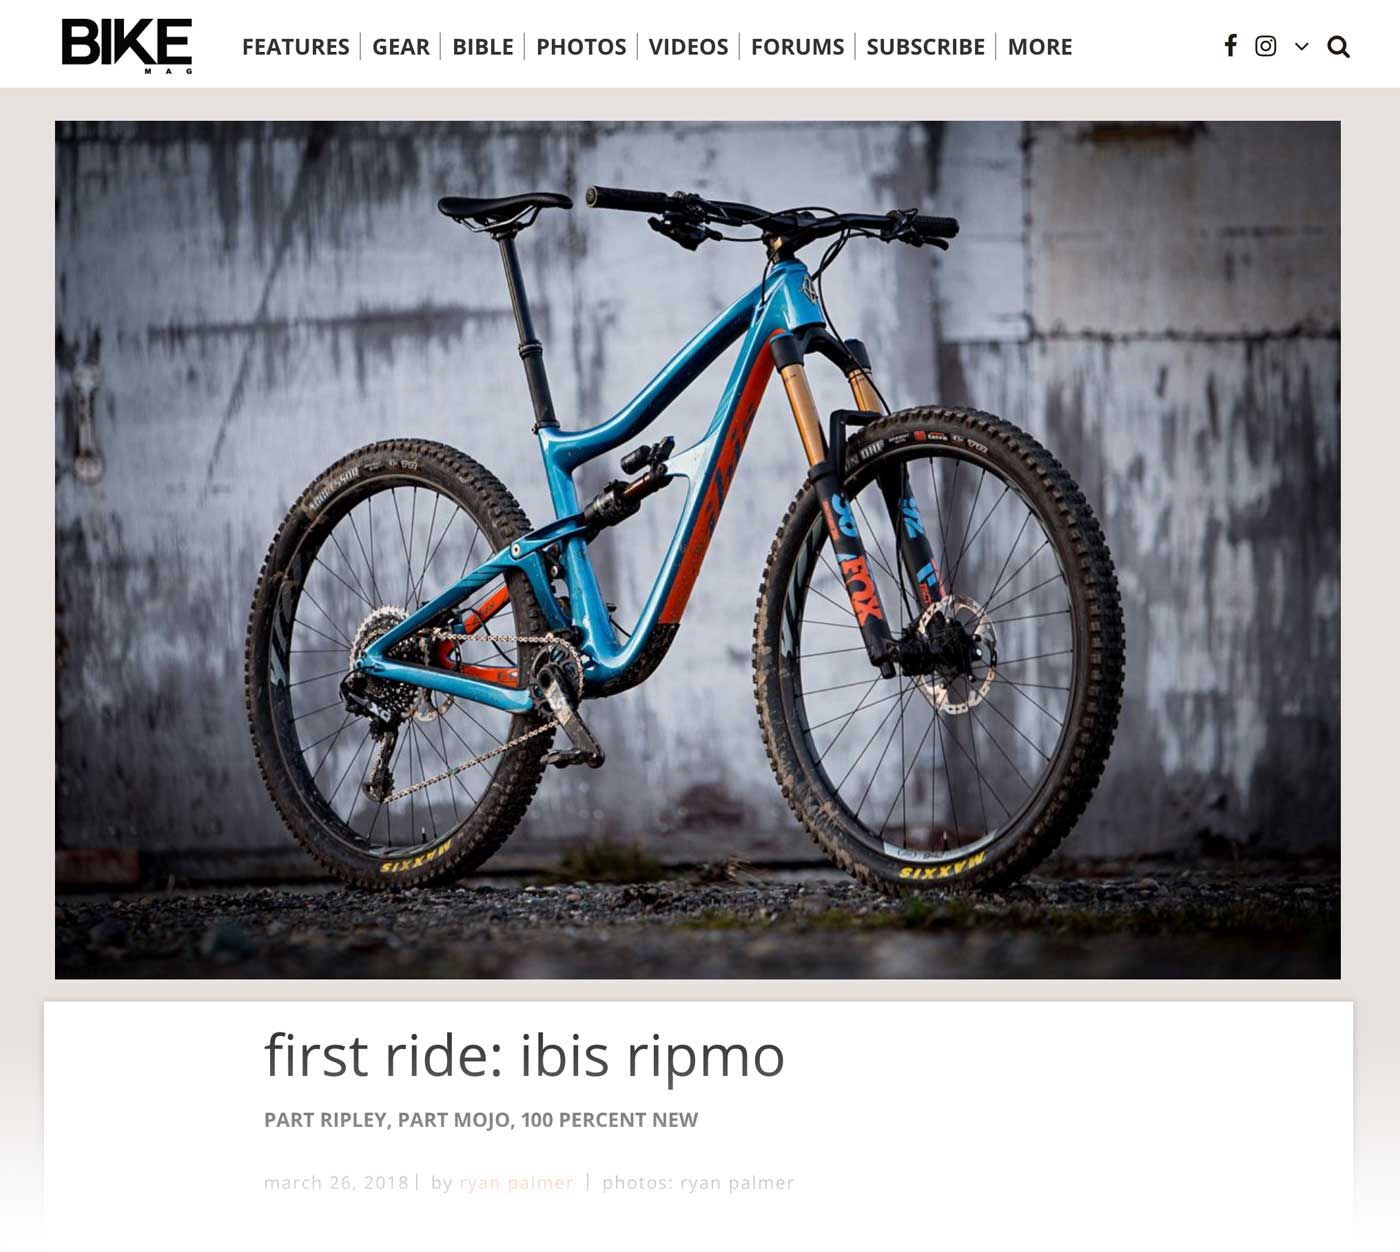 First Ride Ibis Ripmo Bike Magazine Racing Bikes Riding